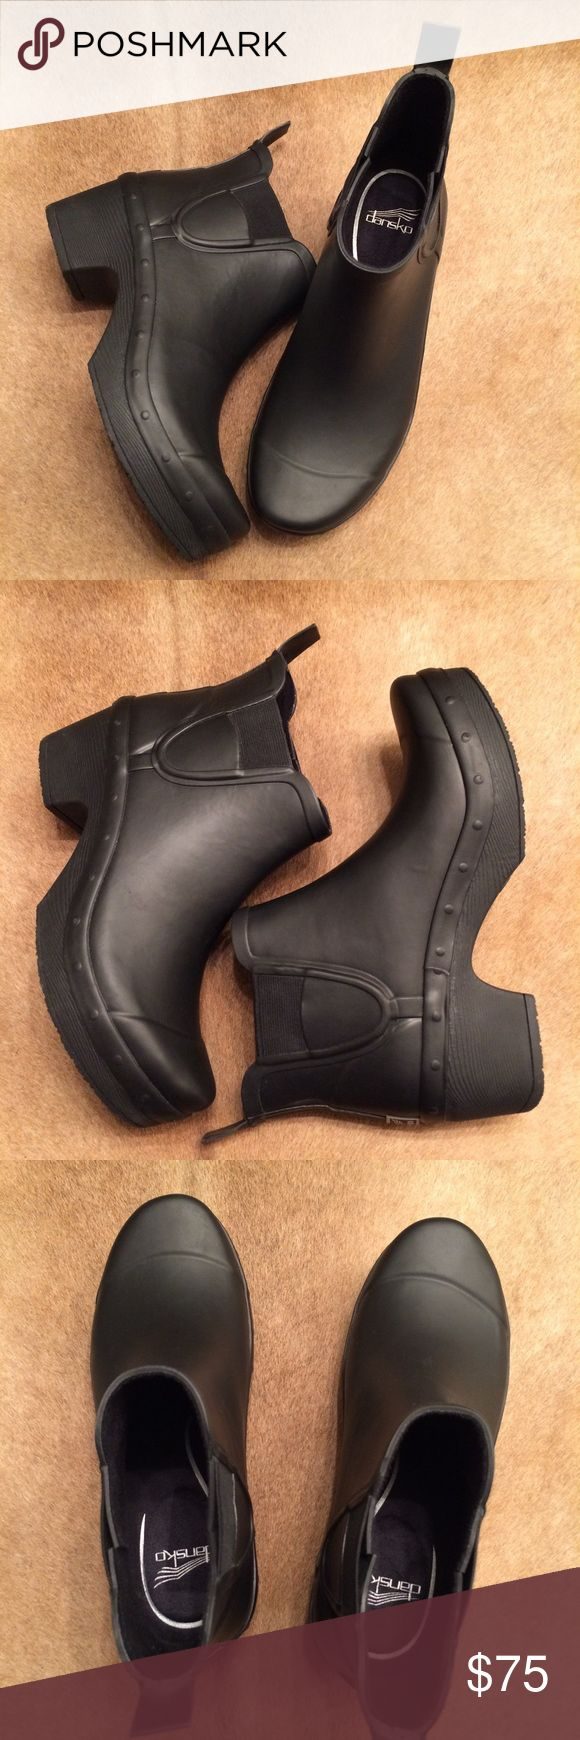 Dansko Rosa Rain Boot These boots are by the famous brand Dansko! They are solid black with all of the comfortable features that this brand is known for! Add these to your collection today! Dansko Shoes Winter & Rain Boots